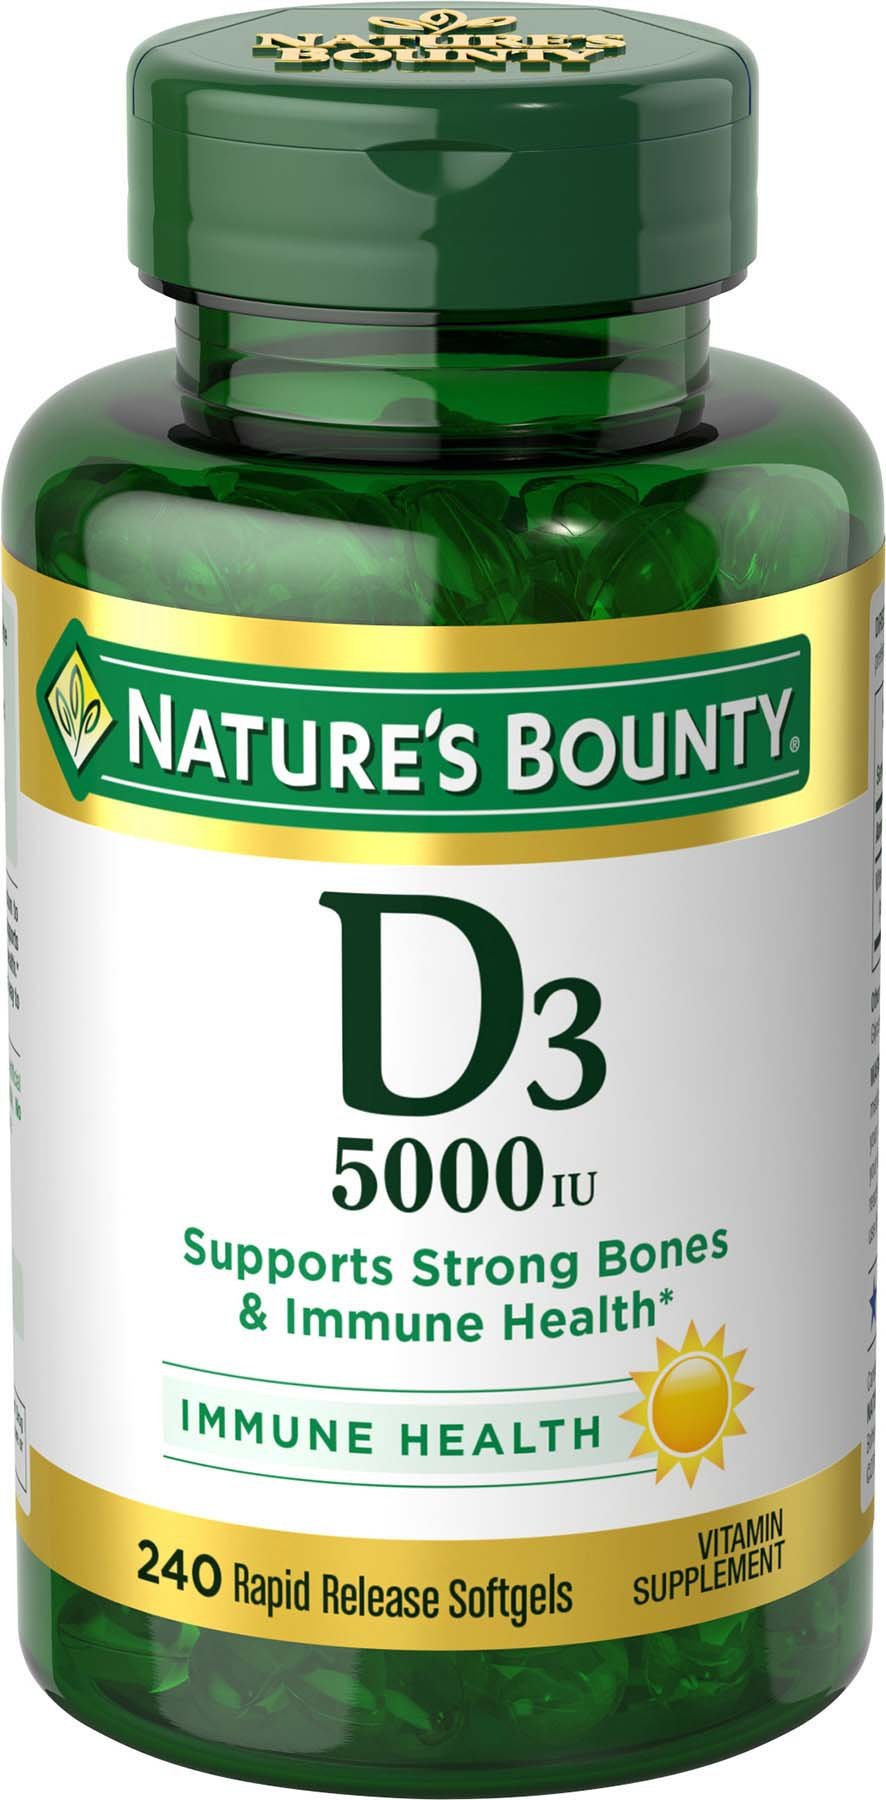 Nature's Bounty Vitamin D3 Pills & Supplement, Supports Bone Health & Immune System, 5000iu, 240 Count Softgels by Nature's Bounty